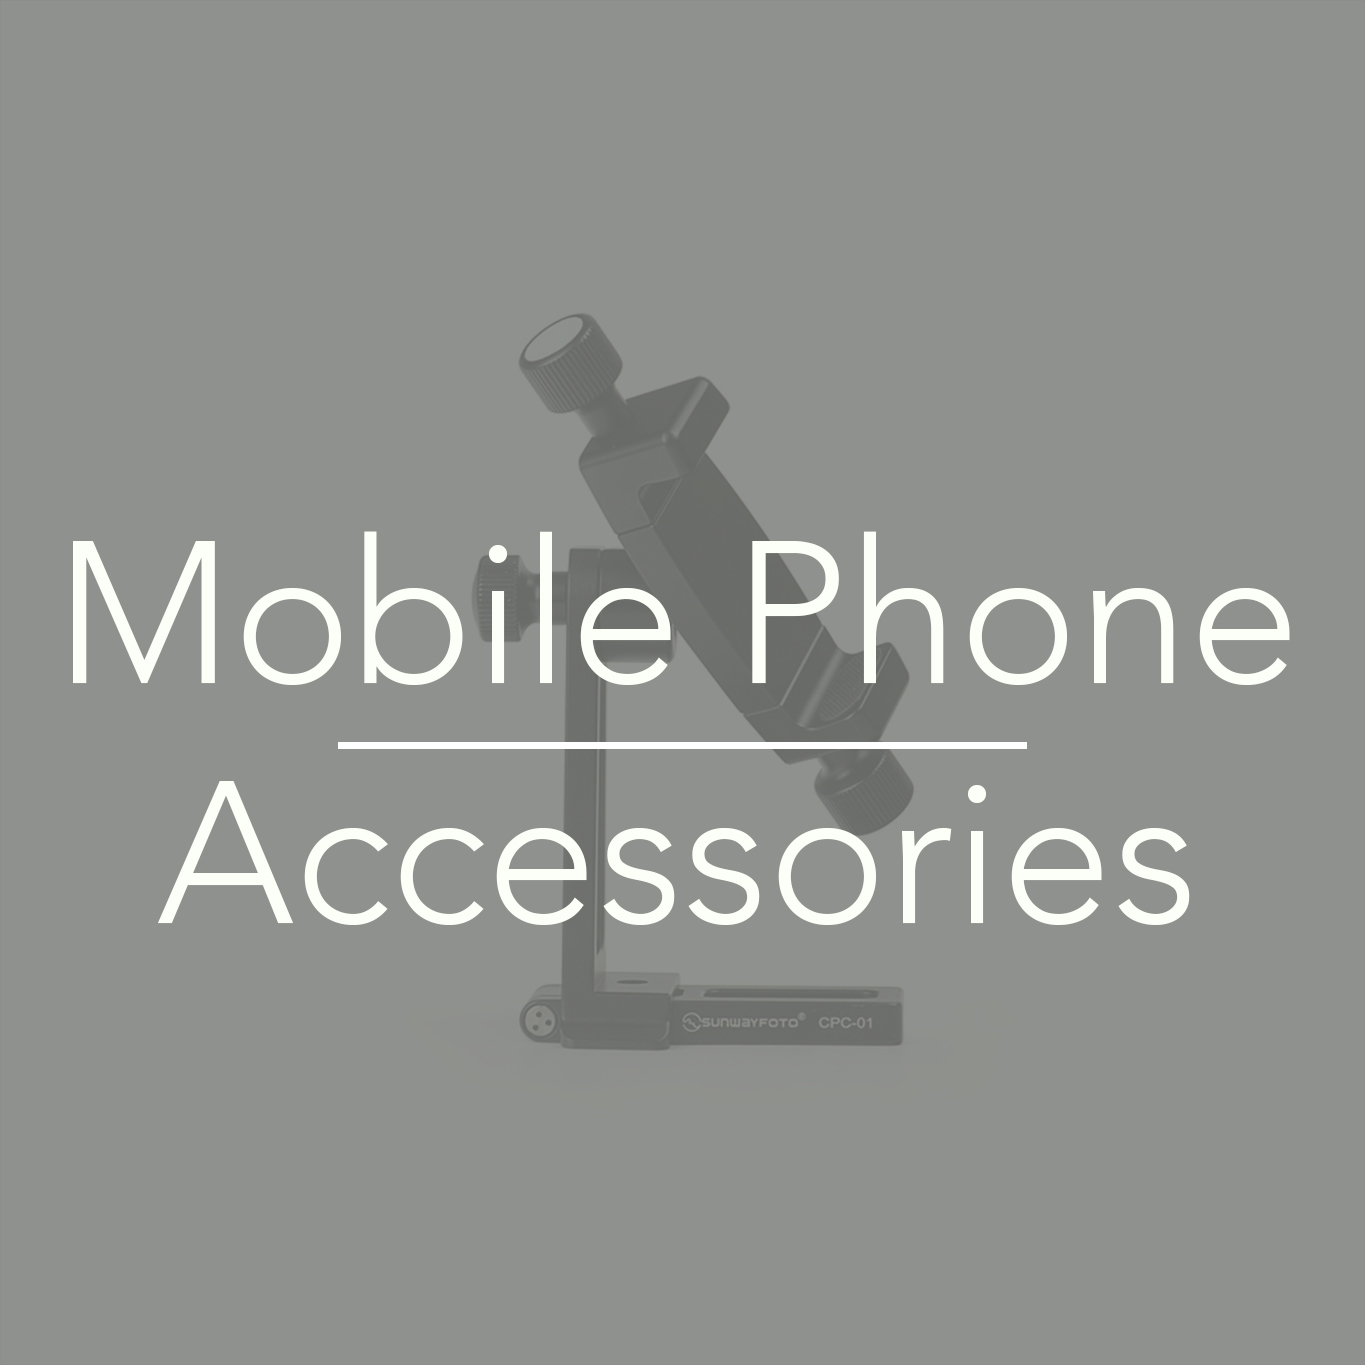 Mobile Phone Accessories for Professionals Sunwayfoto Australia